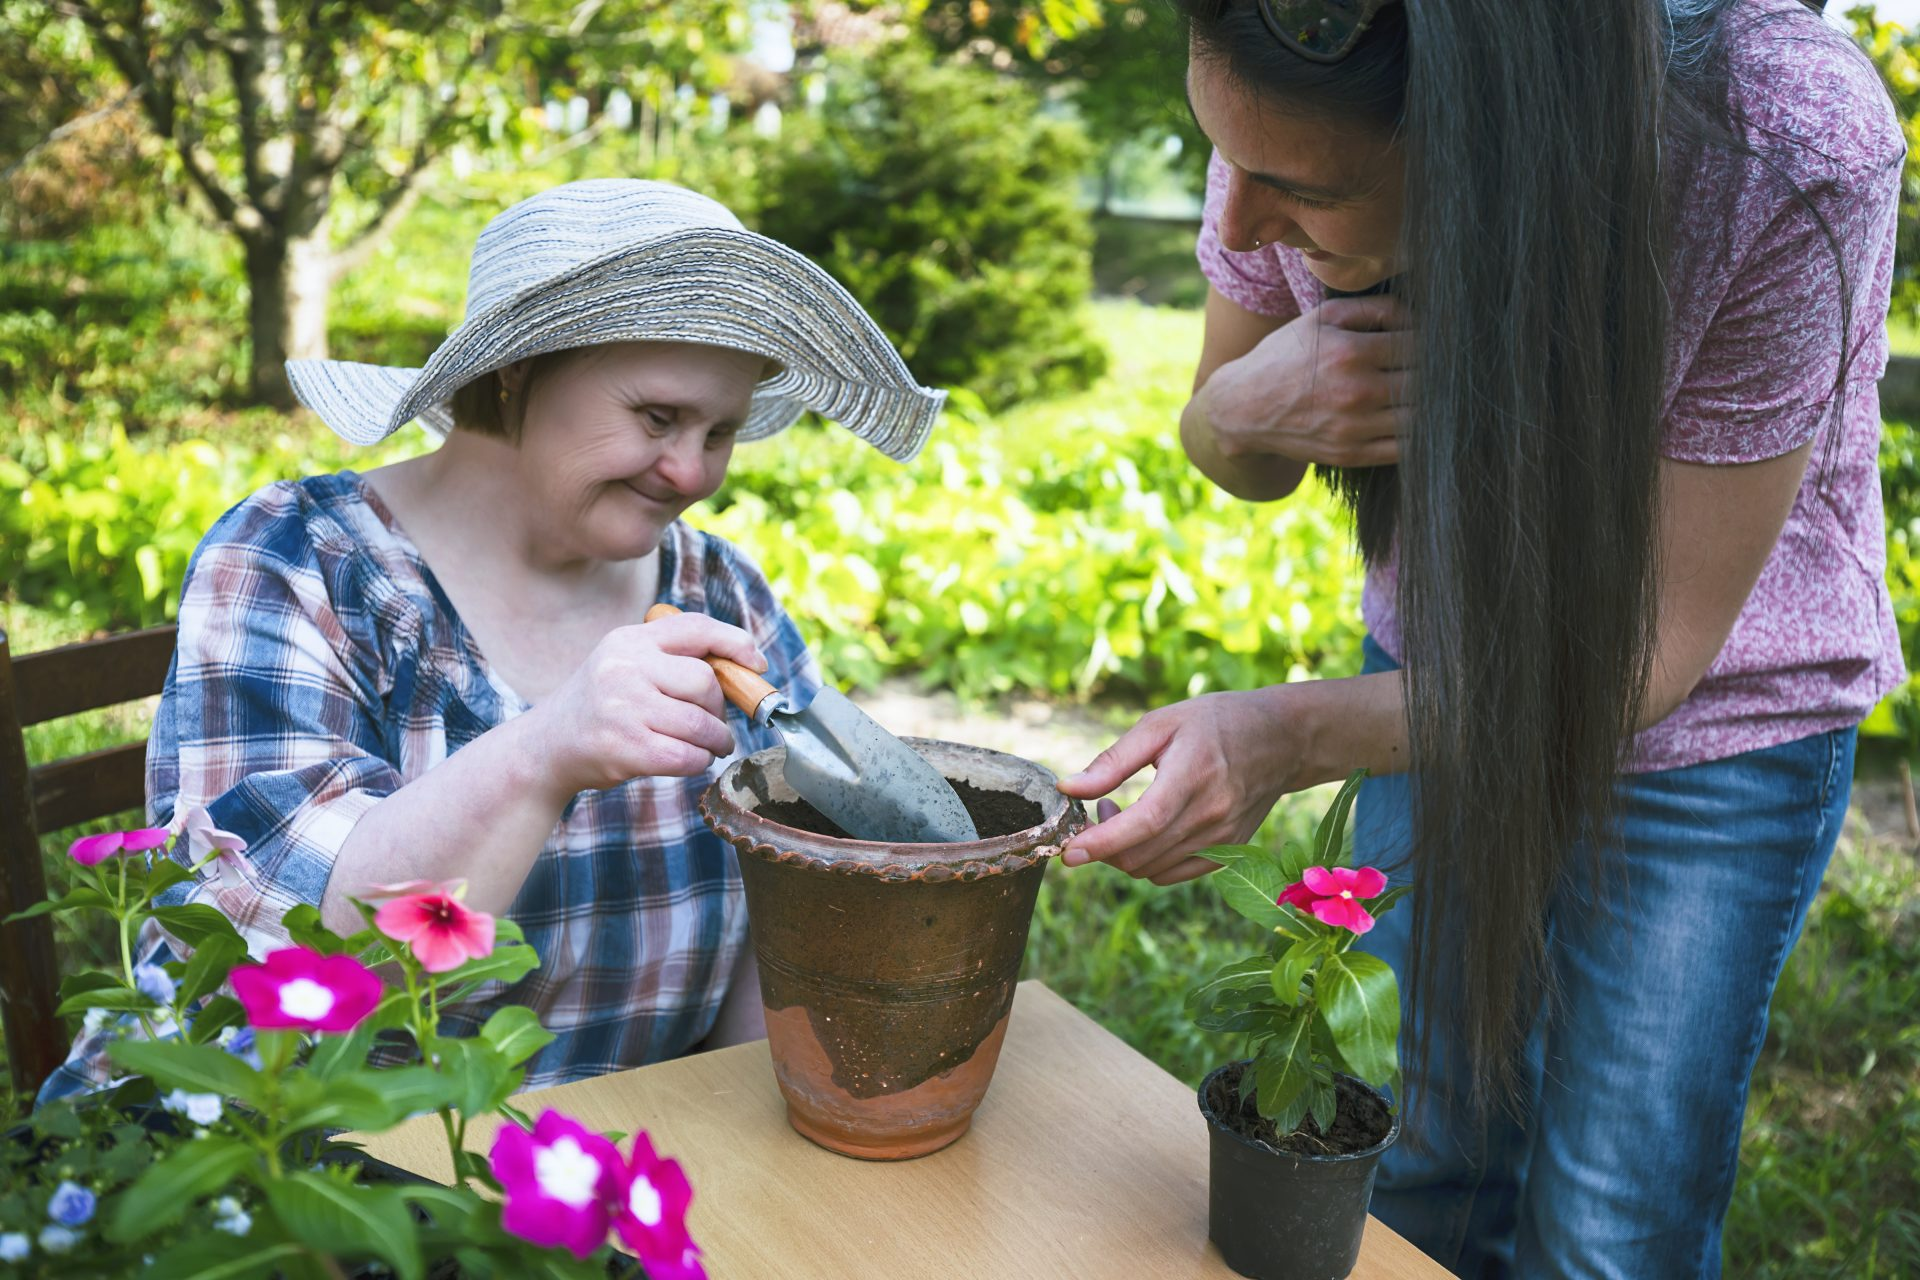 Woman with Down Syndrome and her friend planting flowers together. Gardening.